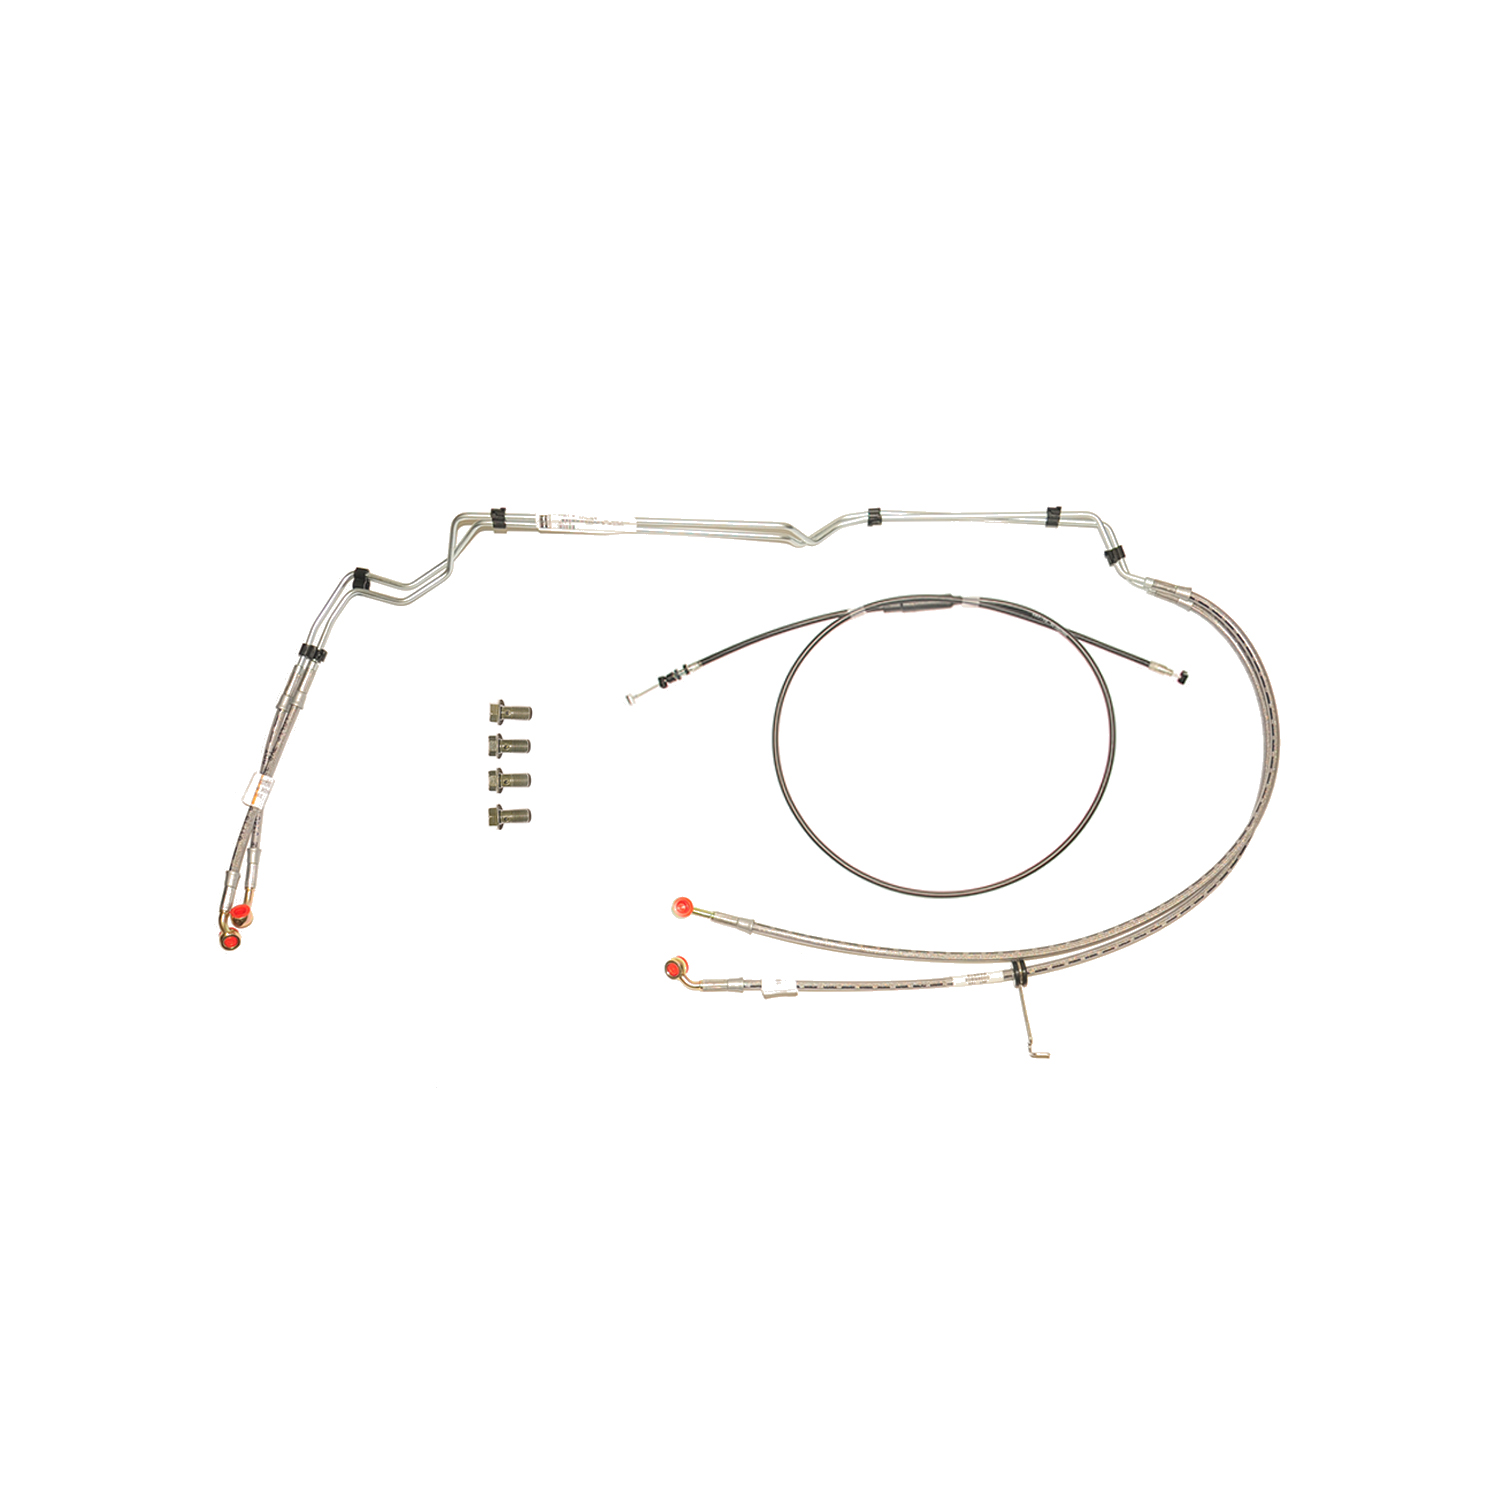 Clutch Cable and ABS Brake Line Kit